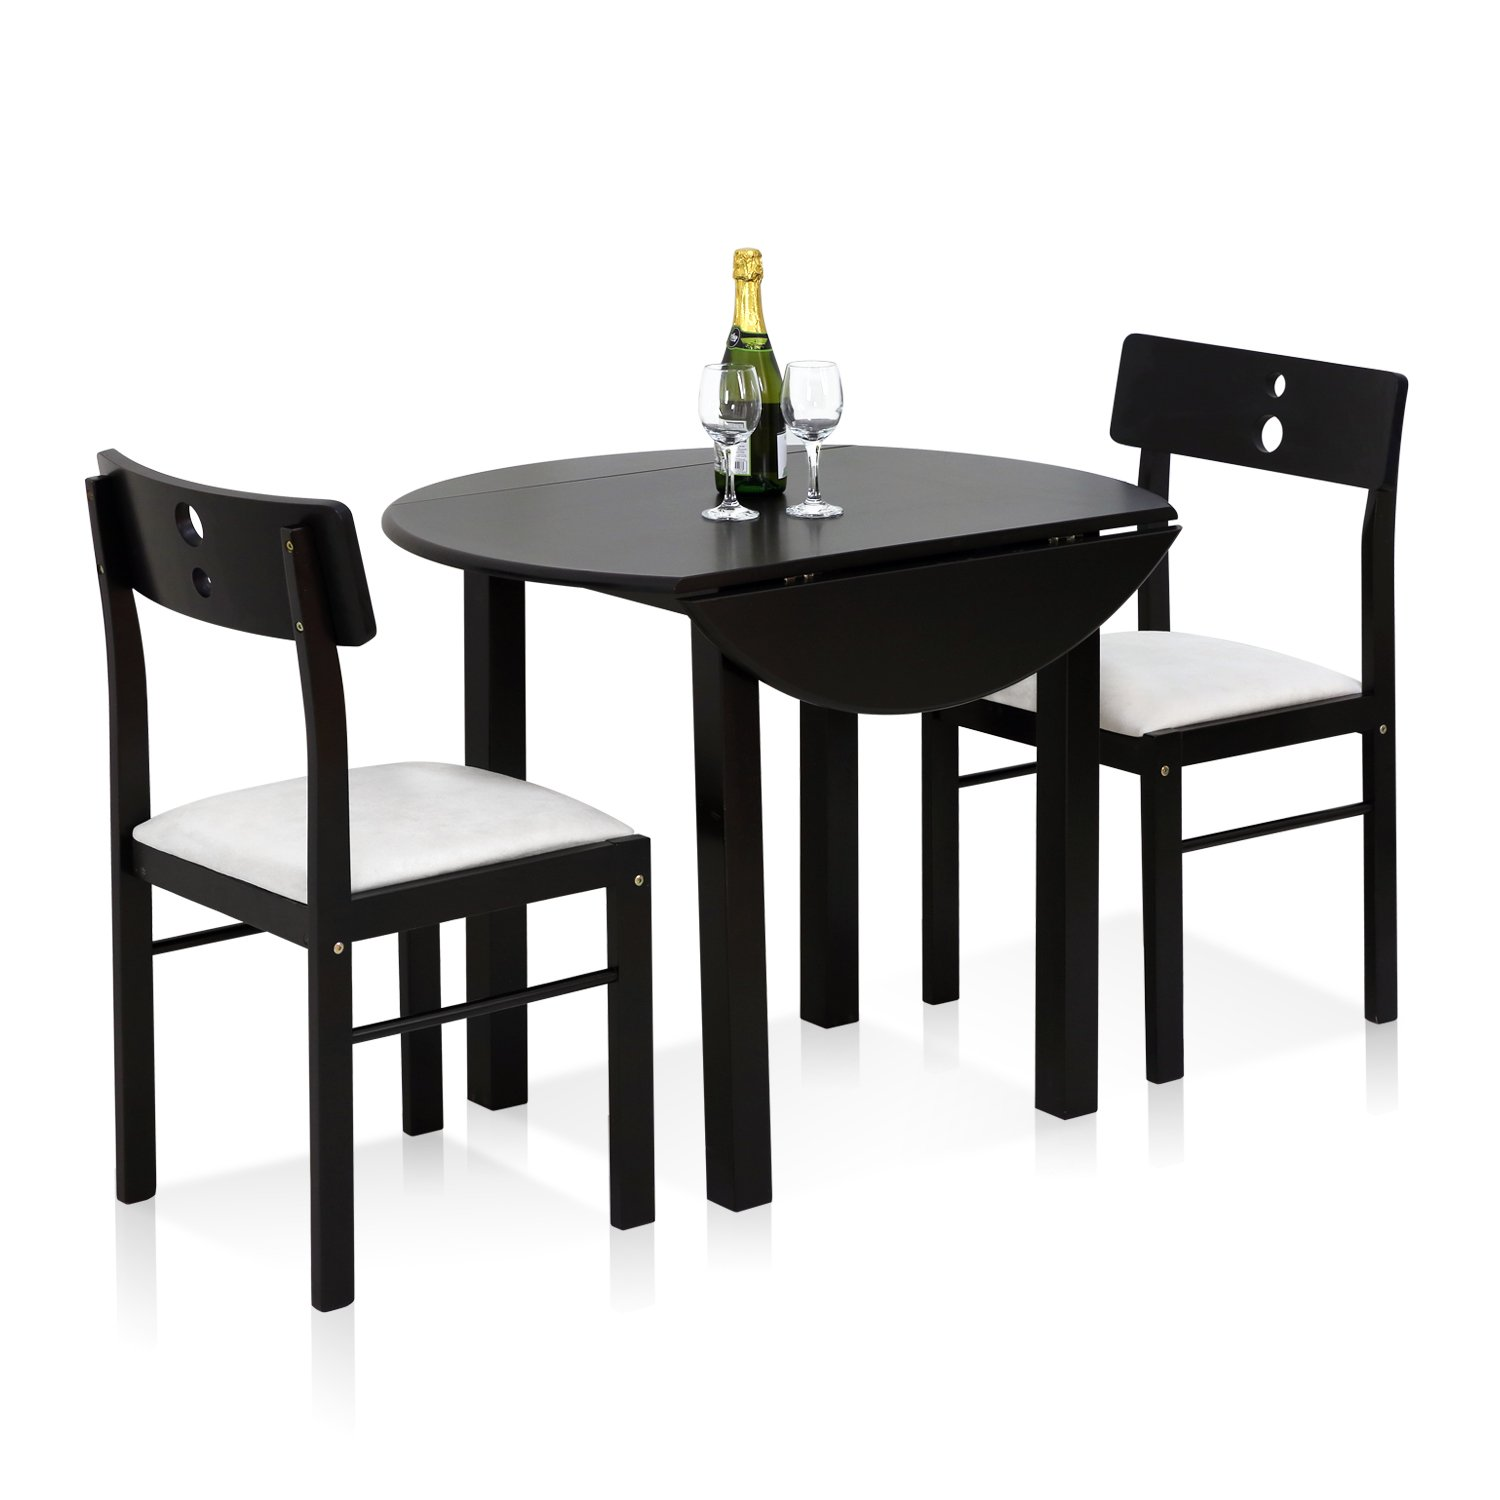 Versatile Kitchen Table And Chair Sets For Your Home: Furinno FKCD075-3 Cos-Drop Leaf Dining Set